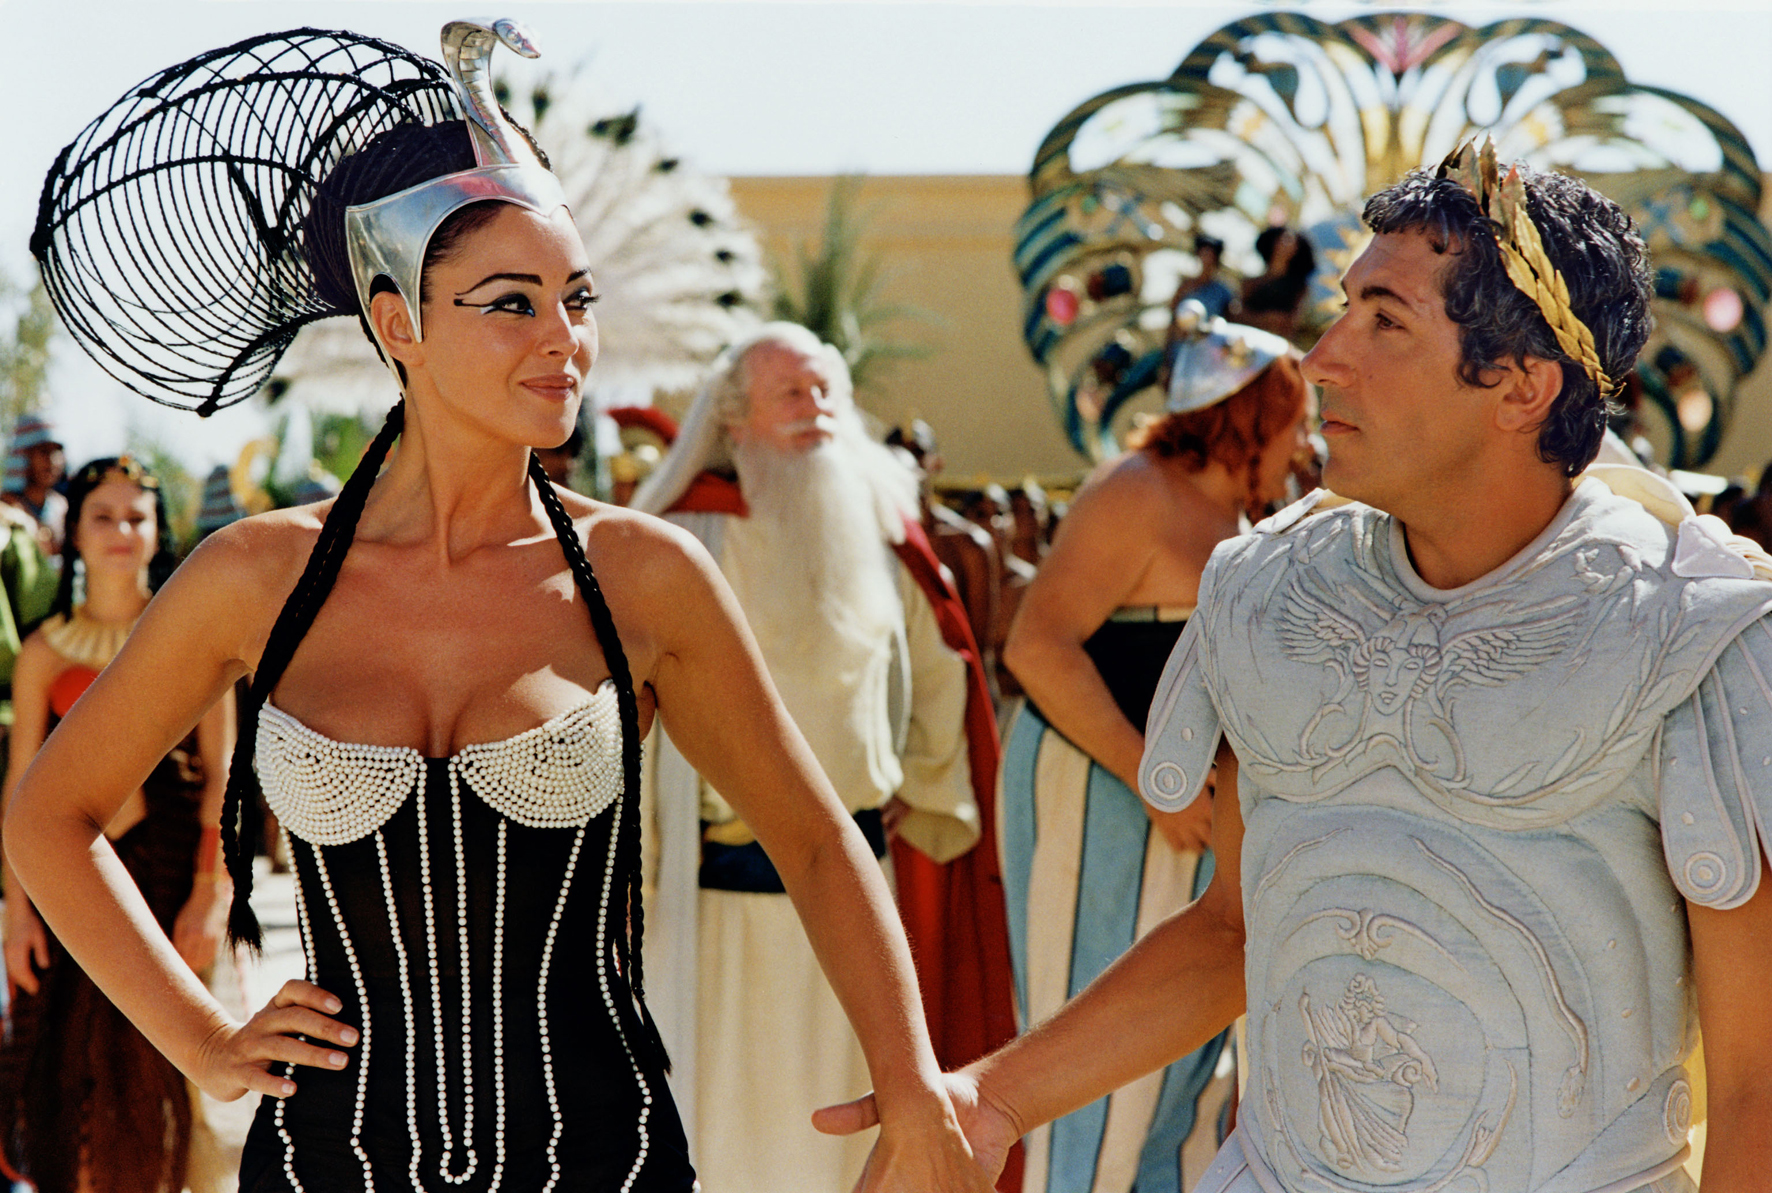 asterix and obelix meet cleopatra movie costumes